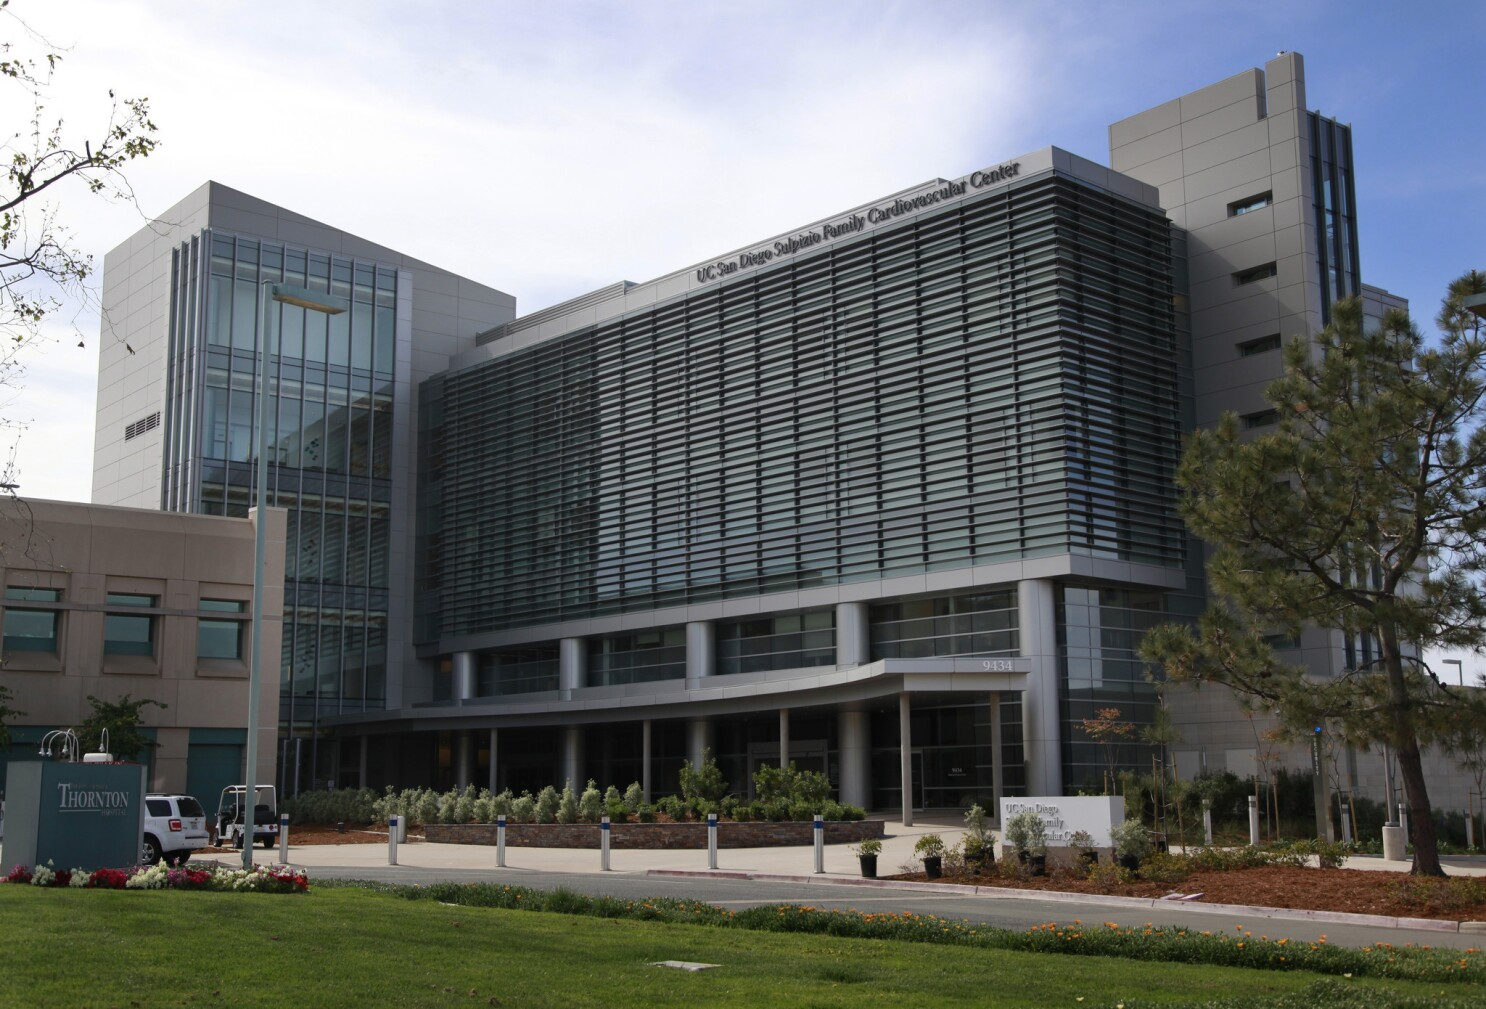 UC San Diego plans to build new hospital in Hillcrest - The